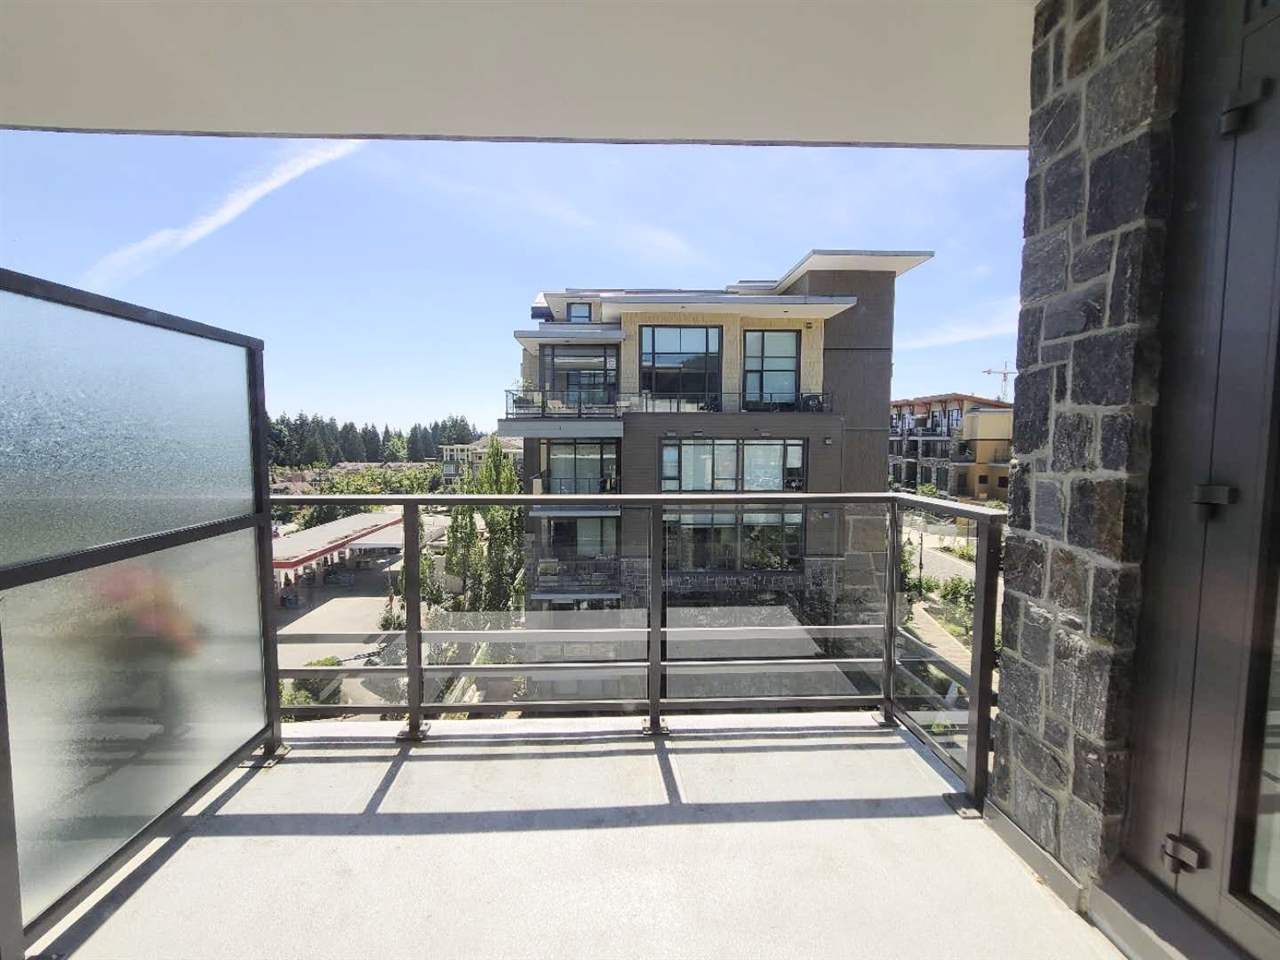 402 1295 CONIFER STREET - Lynn Valley Apartment/Condo for sale, 2 Bedrooms (R2464712) - #13